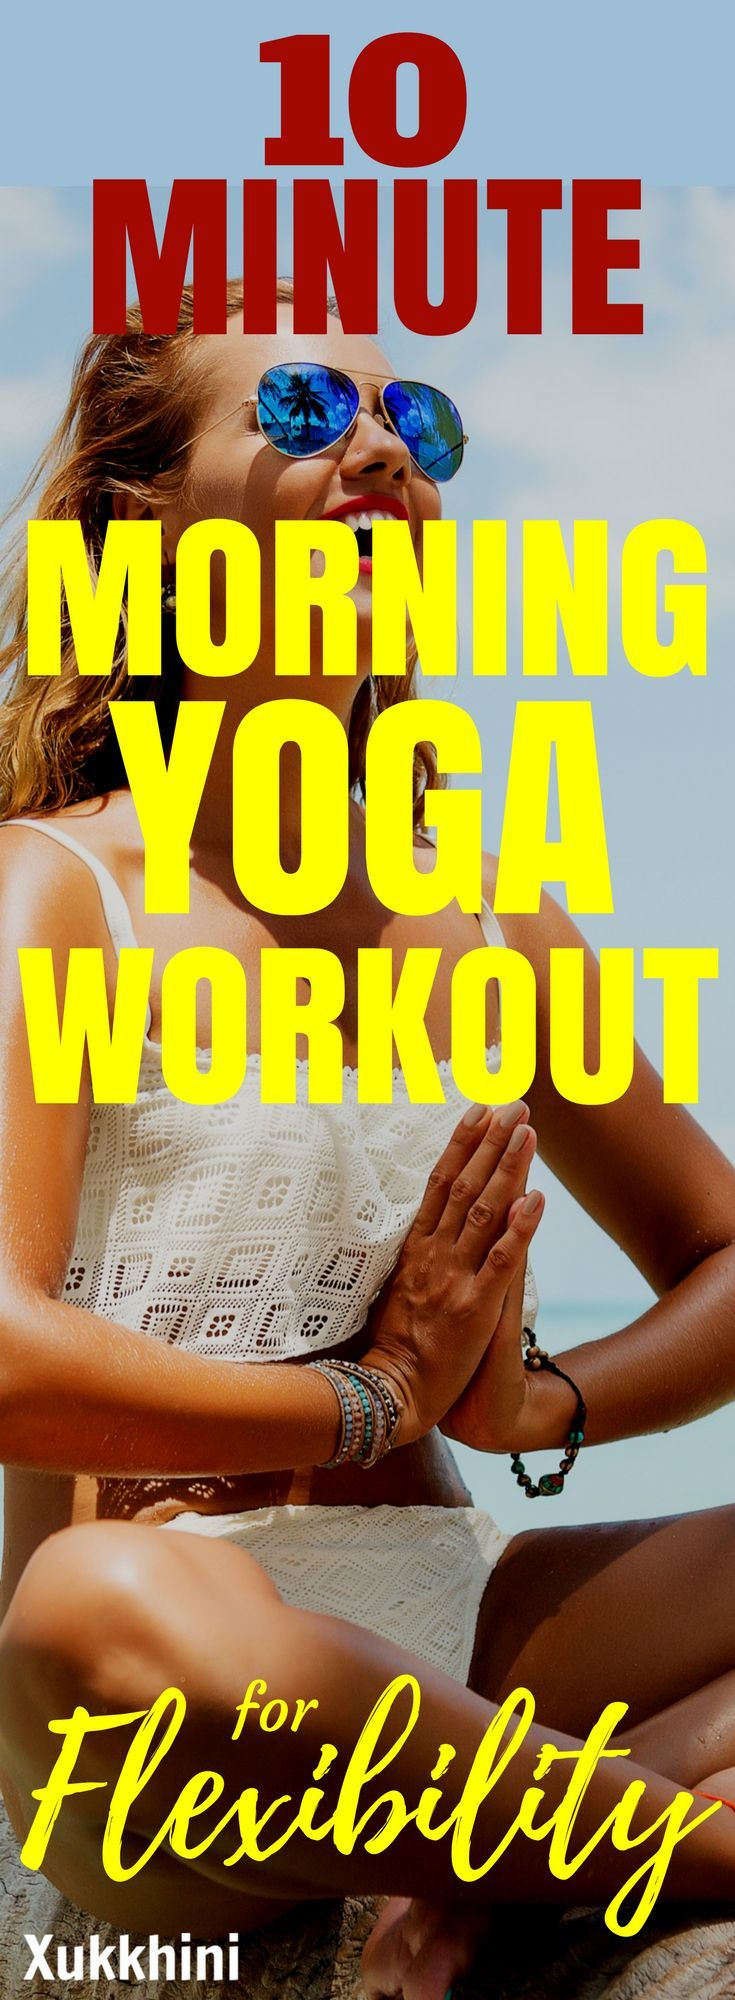 We all need that morning energizer. But rather than reach for the caffeine, why not try the world's oldest workout? This 10-minute morning yoga workout for flexibility will: Engage your muscles, Loosen joints, Relieve tension, Calm your mind and Wake you up! Best of all, its powerful effects will sustain you all day long. #MorningYogaWorkout #MorningYogaWorkoutForFlexibility | Yoga for Beginners | Yoga Poses for Flexibility | Yoga Routine for Flexibility